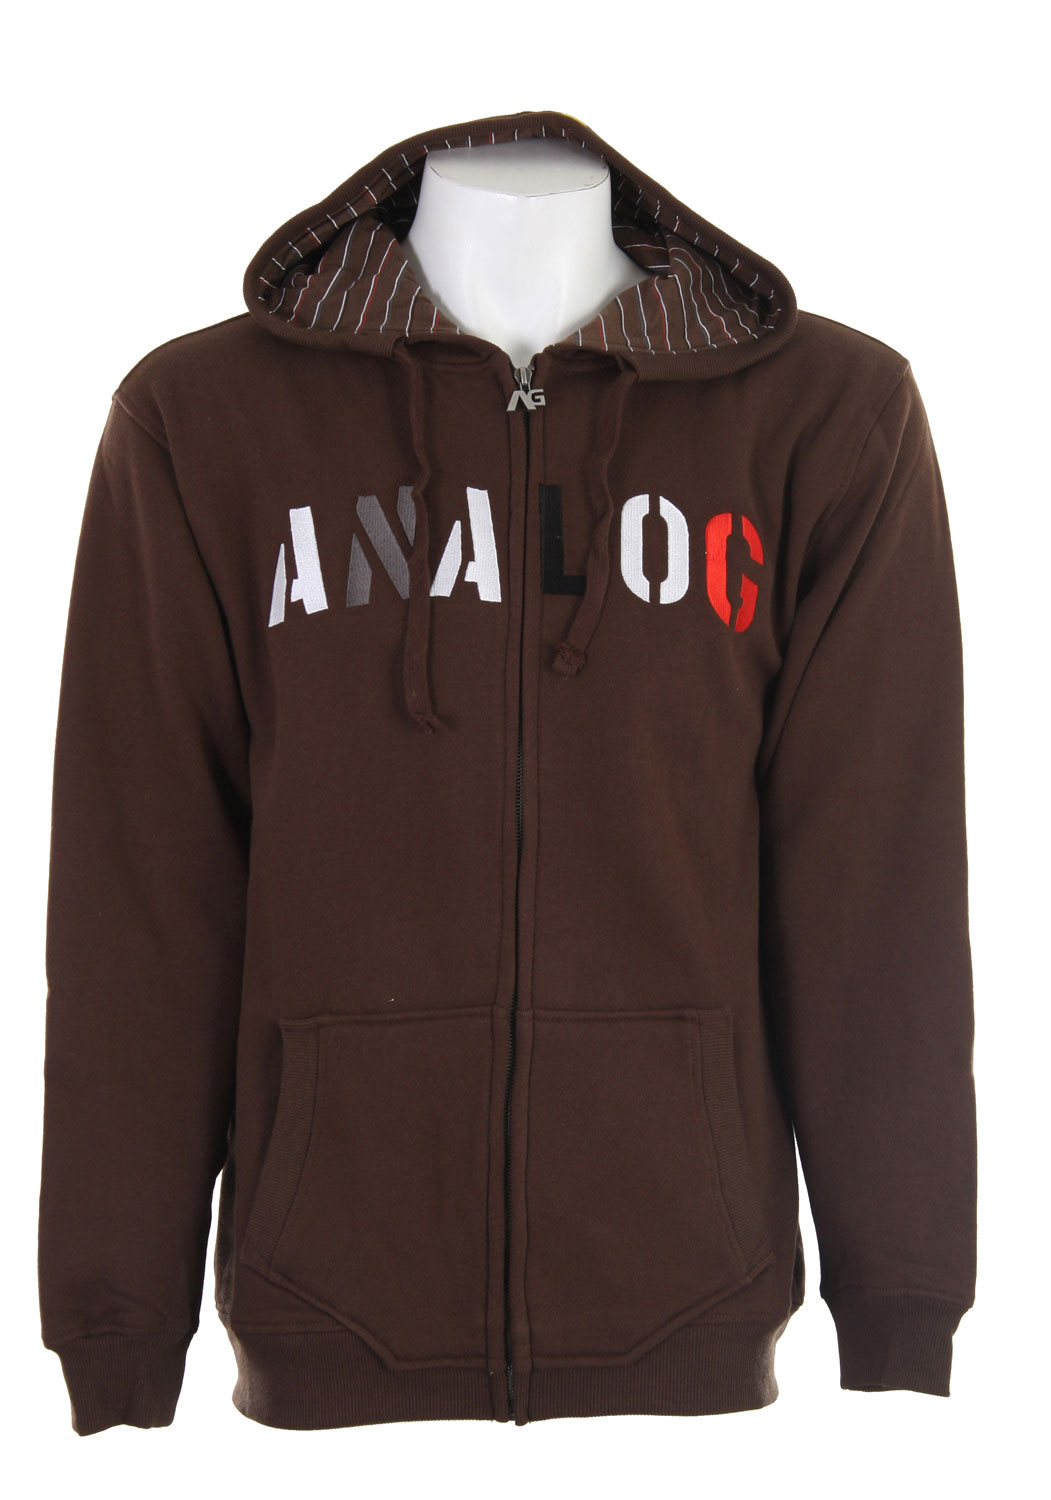 This comfy cool hoodie from Analog has utility and style. Made for 80% cotton and 20% polyester, this hoodie is lightweight, yet durable enough for the active man. It features a printed strip hood lining, contrasting chest embroidery, and a regular fit designed to keep you comfortable for all of life's activities. Its kangaroo pockets and full zip design make this hoodie casual and stylish. The Analog Habitual Full Zip Hoodie will become one of your favorites in no time.Key Features of the Analog Habitual Full Zip Hoodie: Regular Fit 80% Cotton / 20% Polyester 330G Brushed Fleece Chest Embroidery Printed Stripe Hood Lining - $24.95